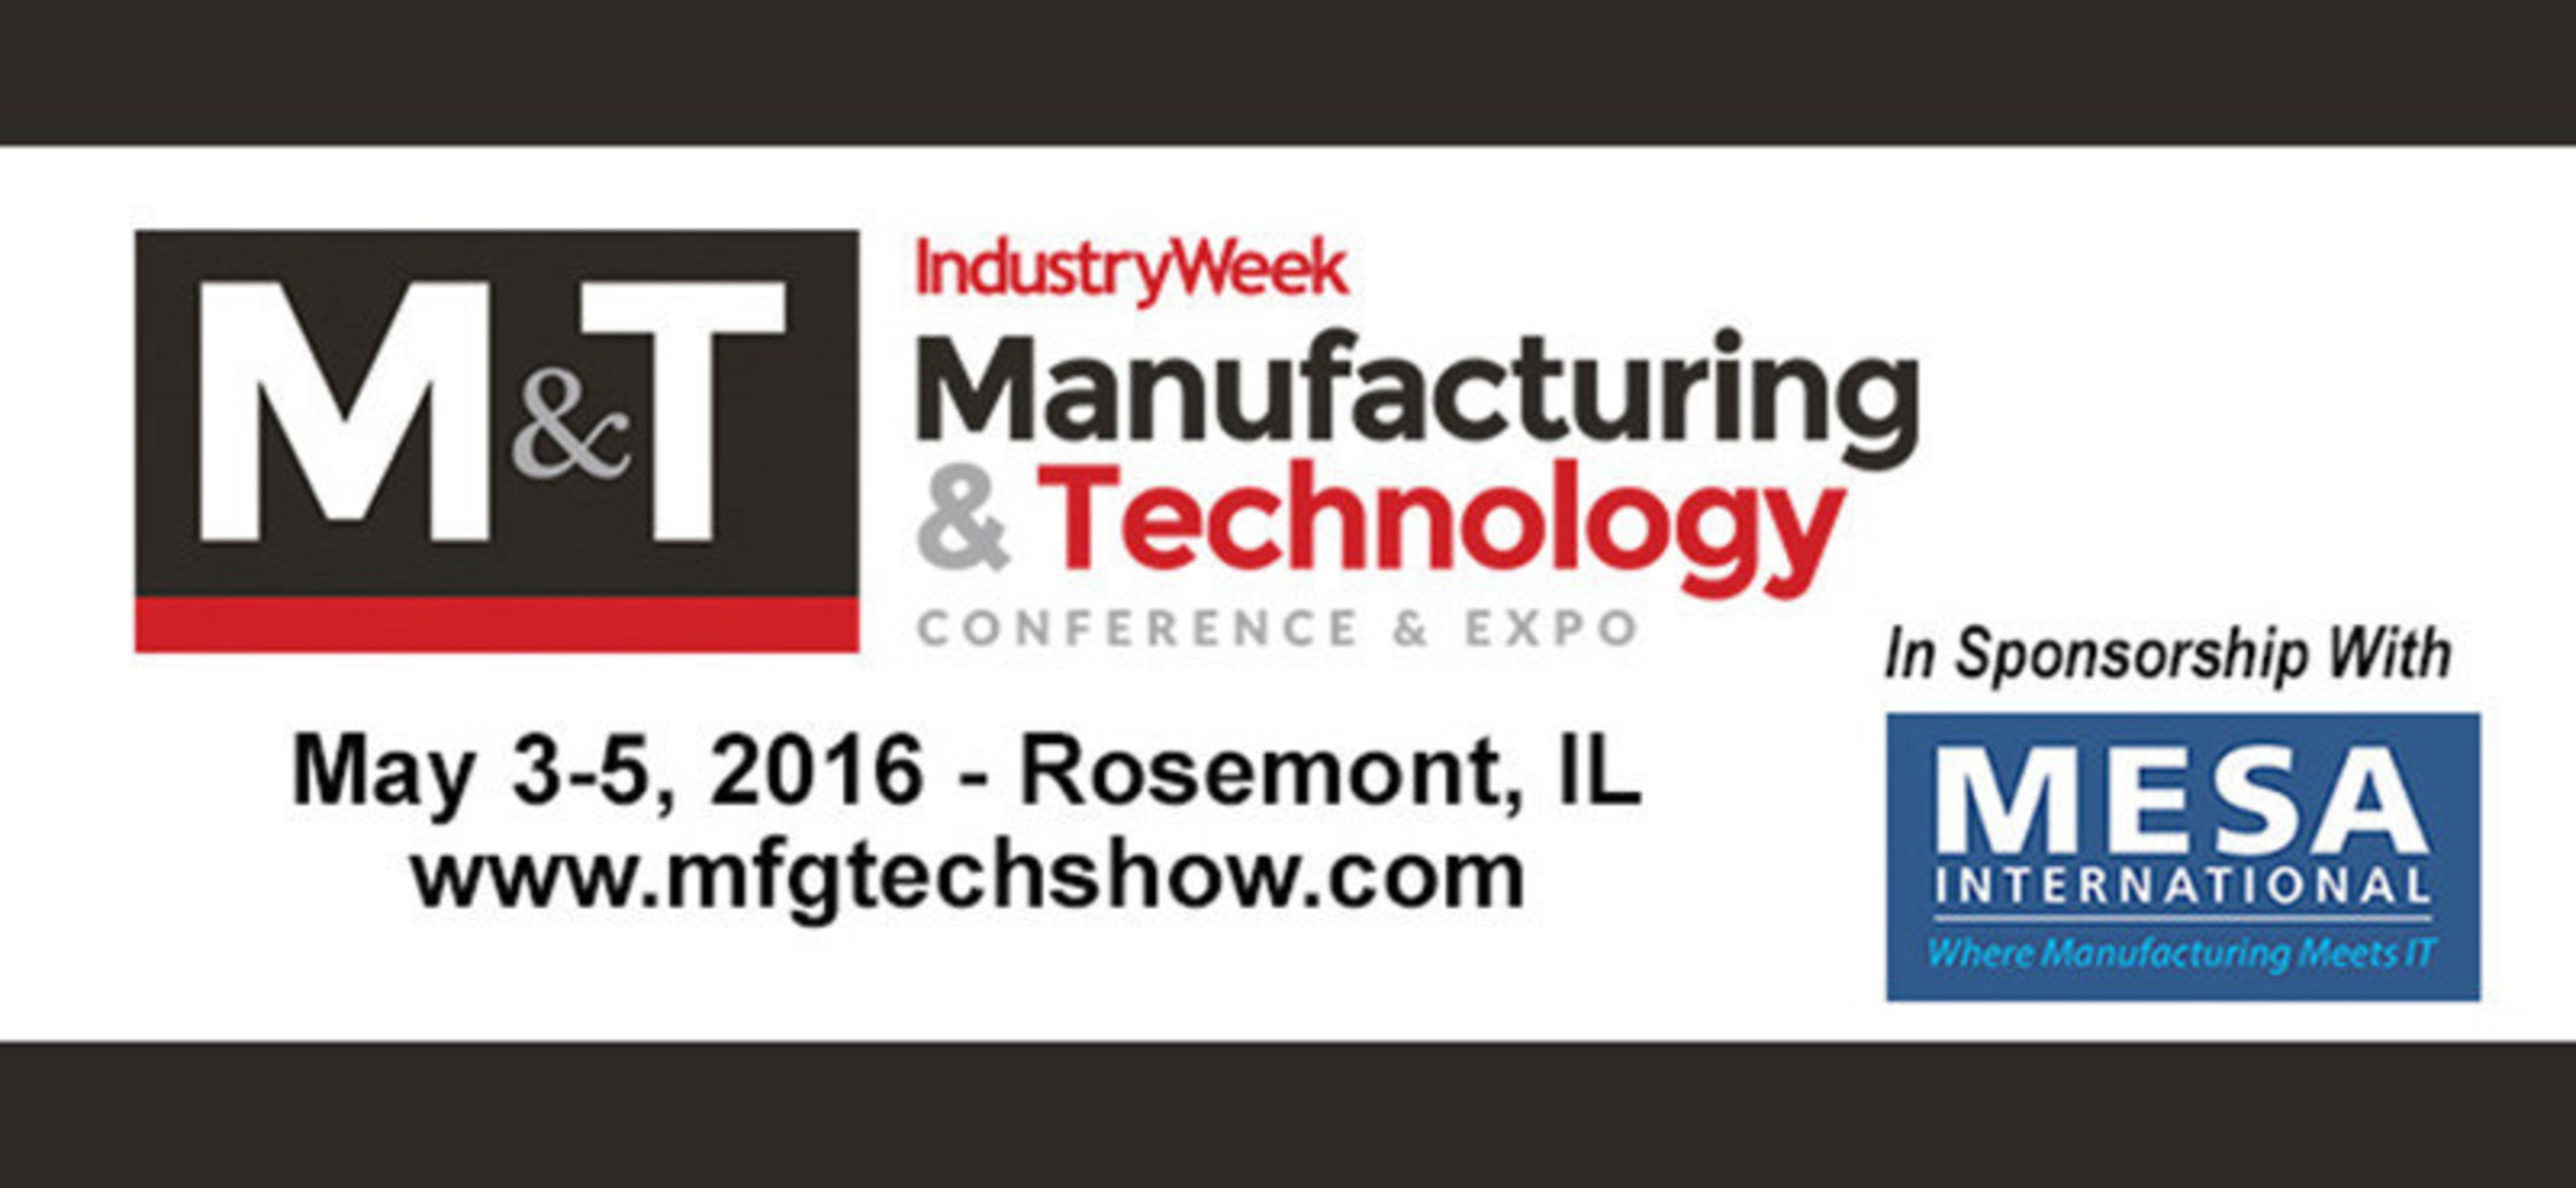 MESA North American Conference to Co-Locate with Penton's 2016 IndustryWeek Manufacturing &